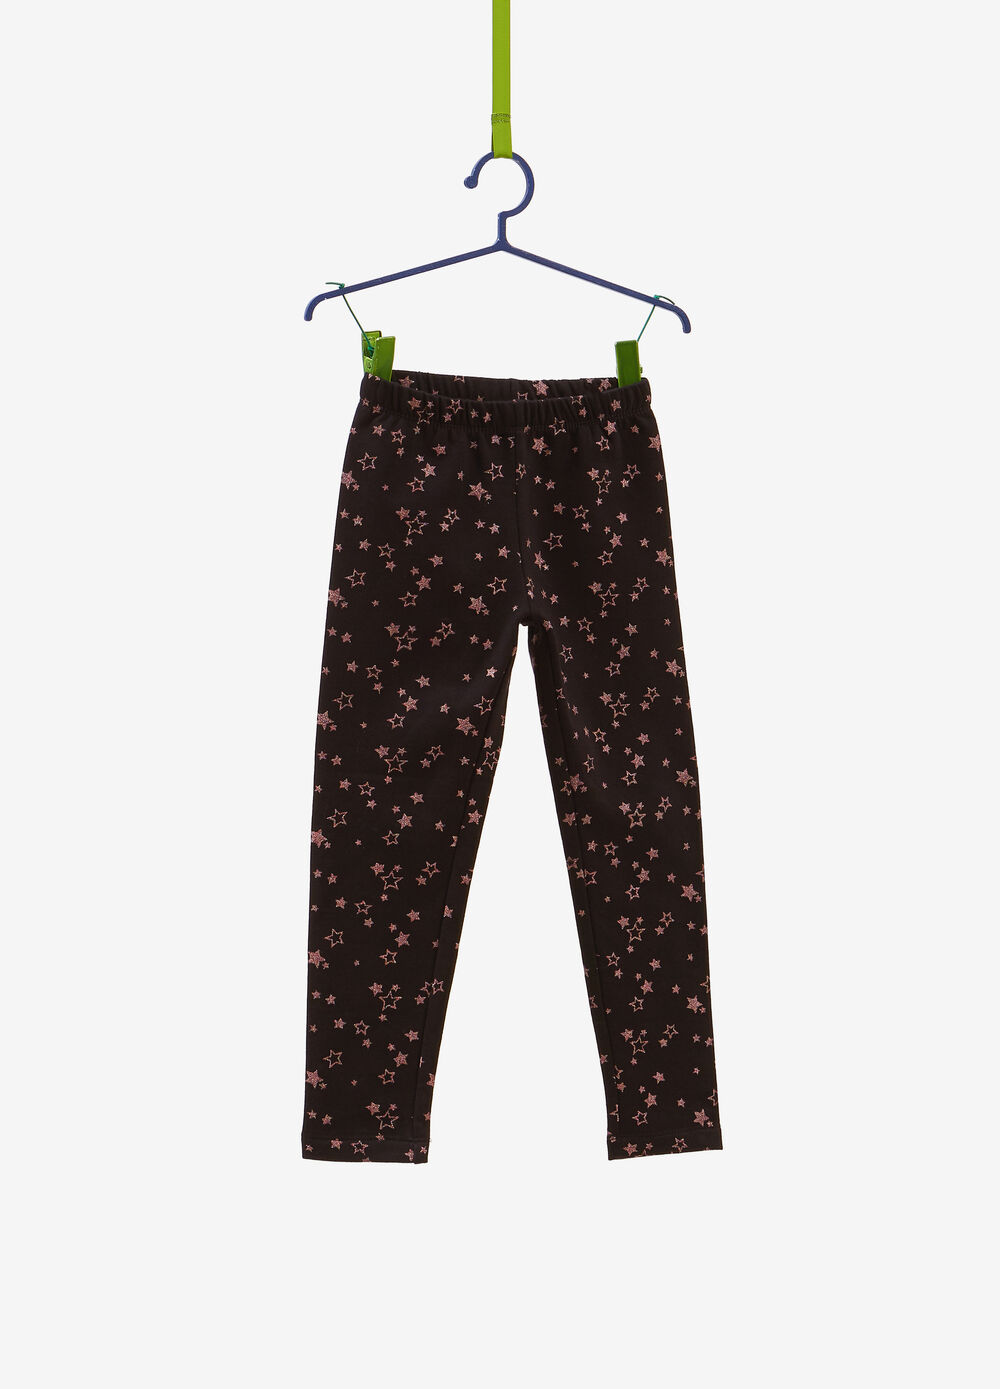 Stretch leggings with star pattern